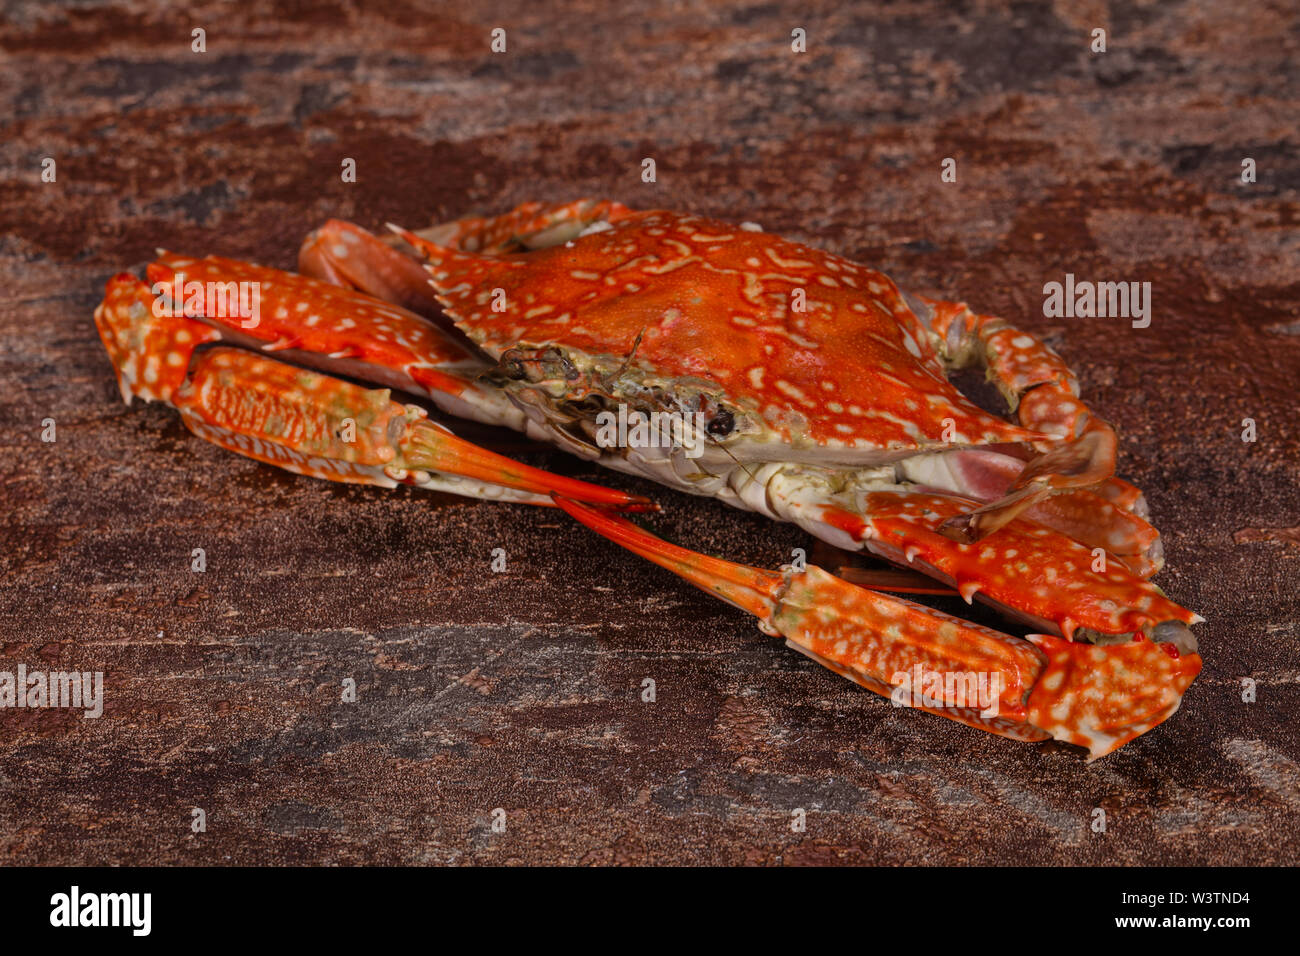 Delicous Boiled crab - ready for eat - Stock Image